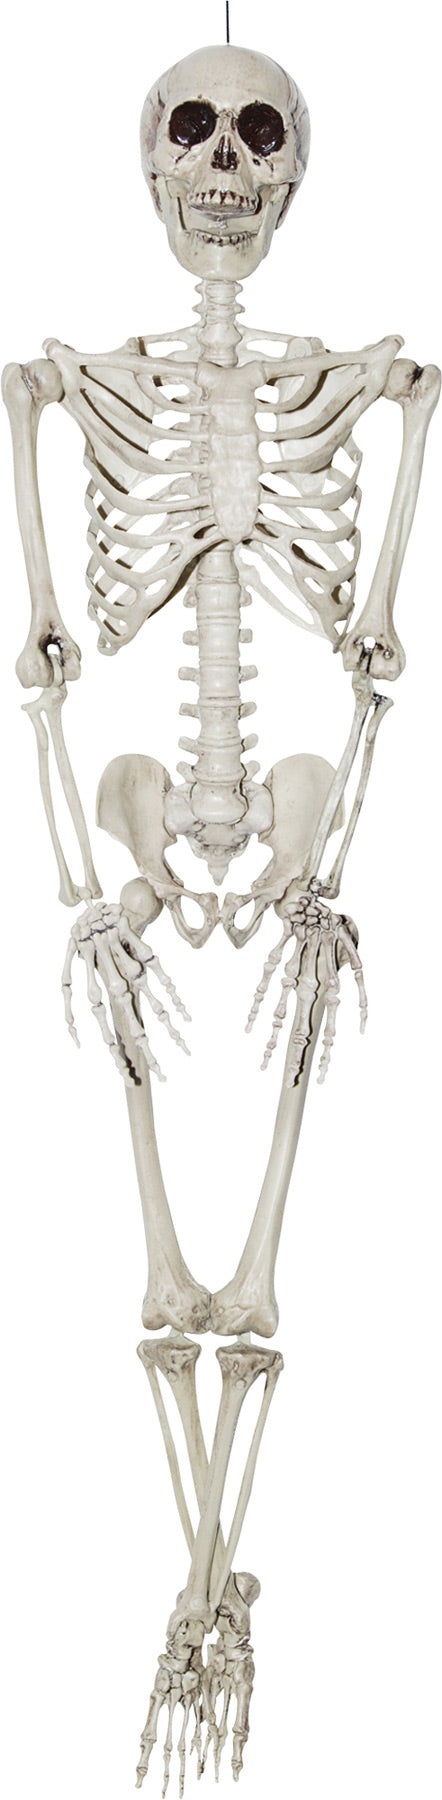 MORRIS COSTUMES Skeleton 36 Inch